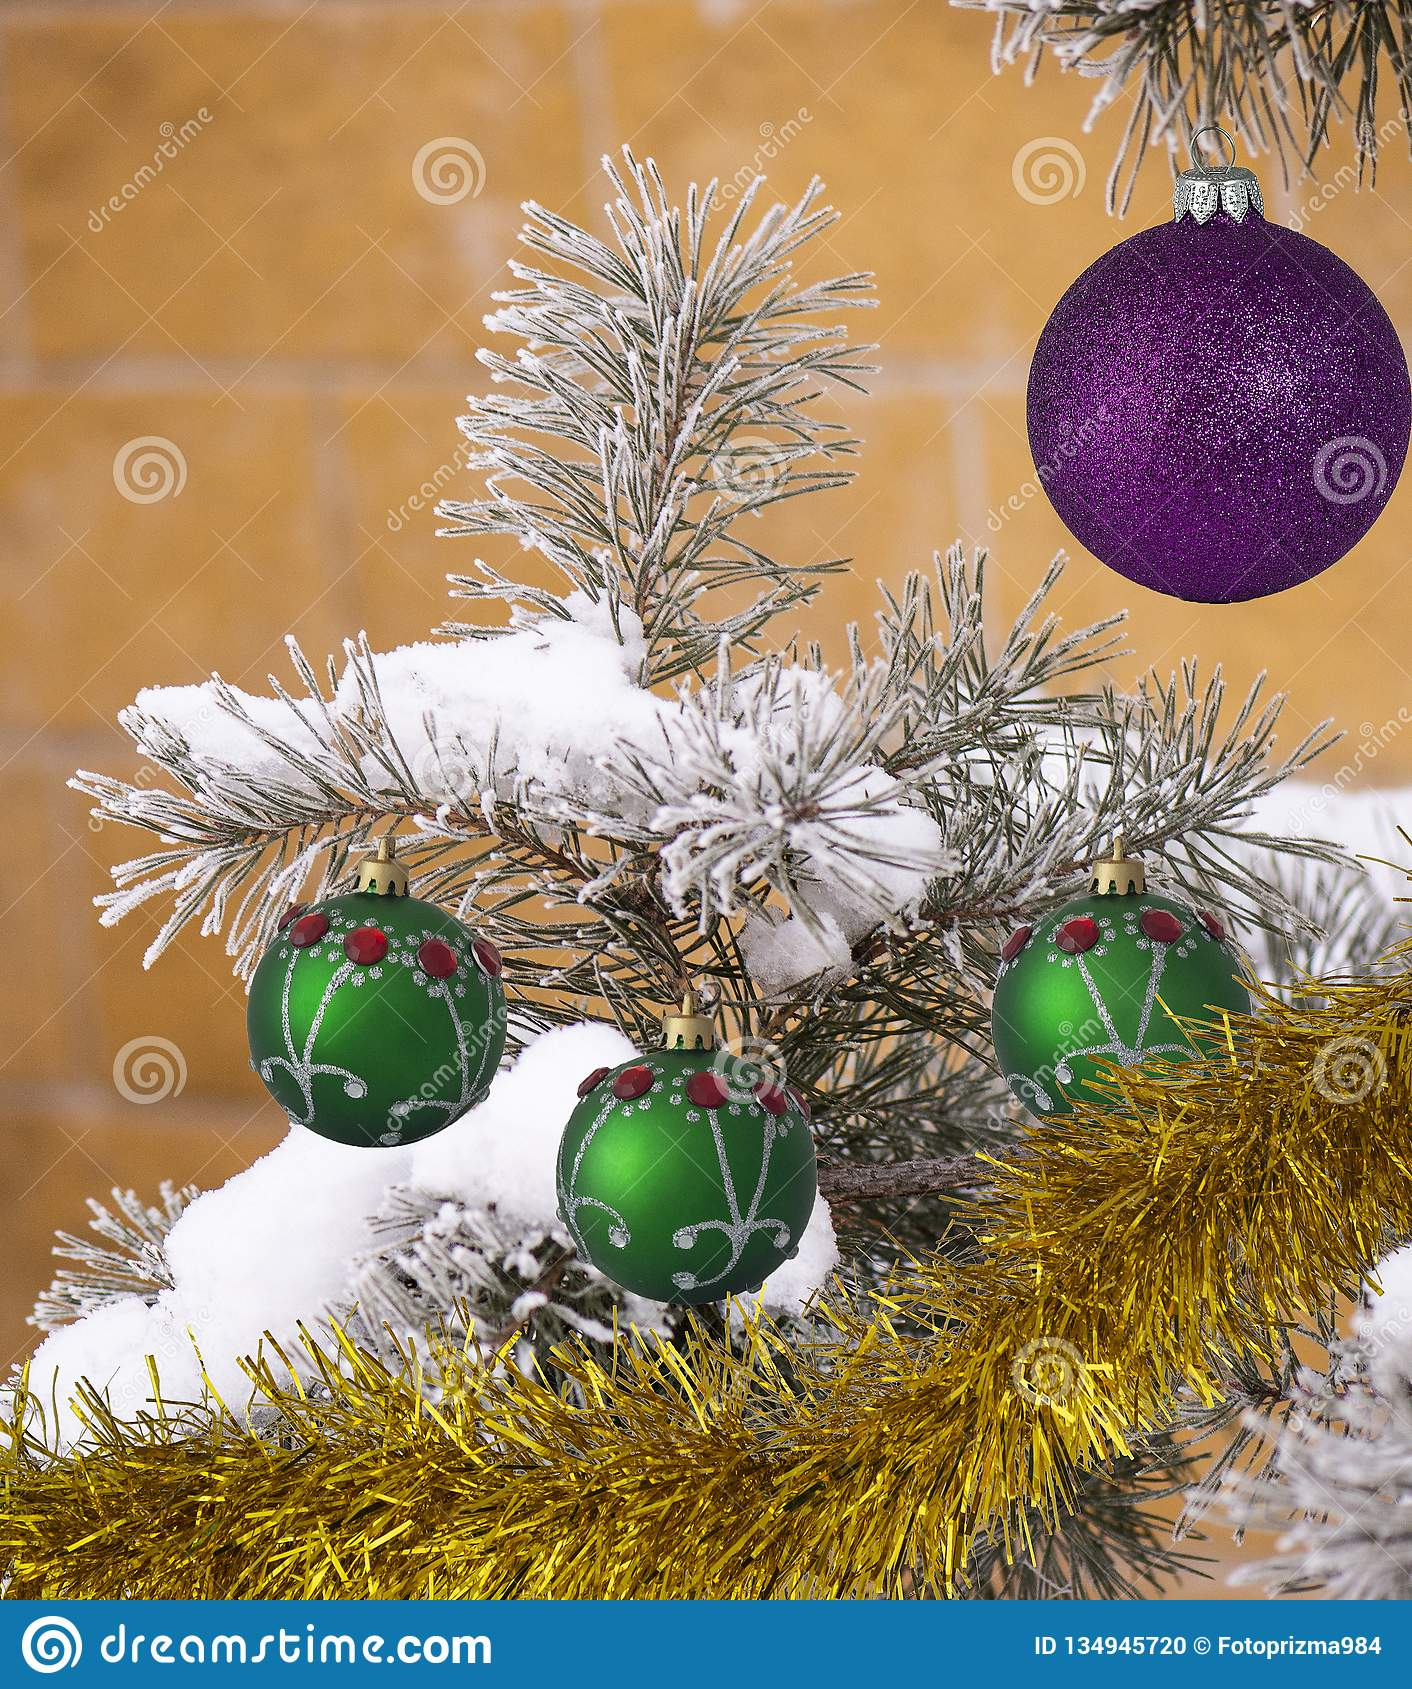 Powdered Christmas Tree Decorated With Purple Ball Golden Garland